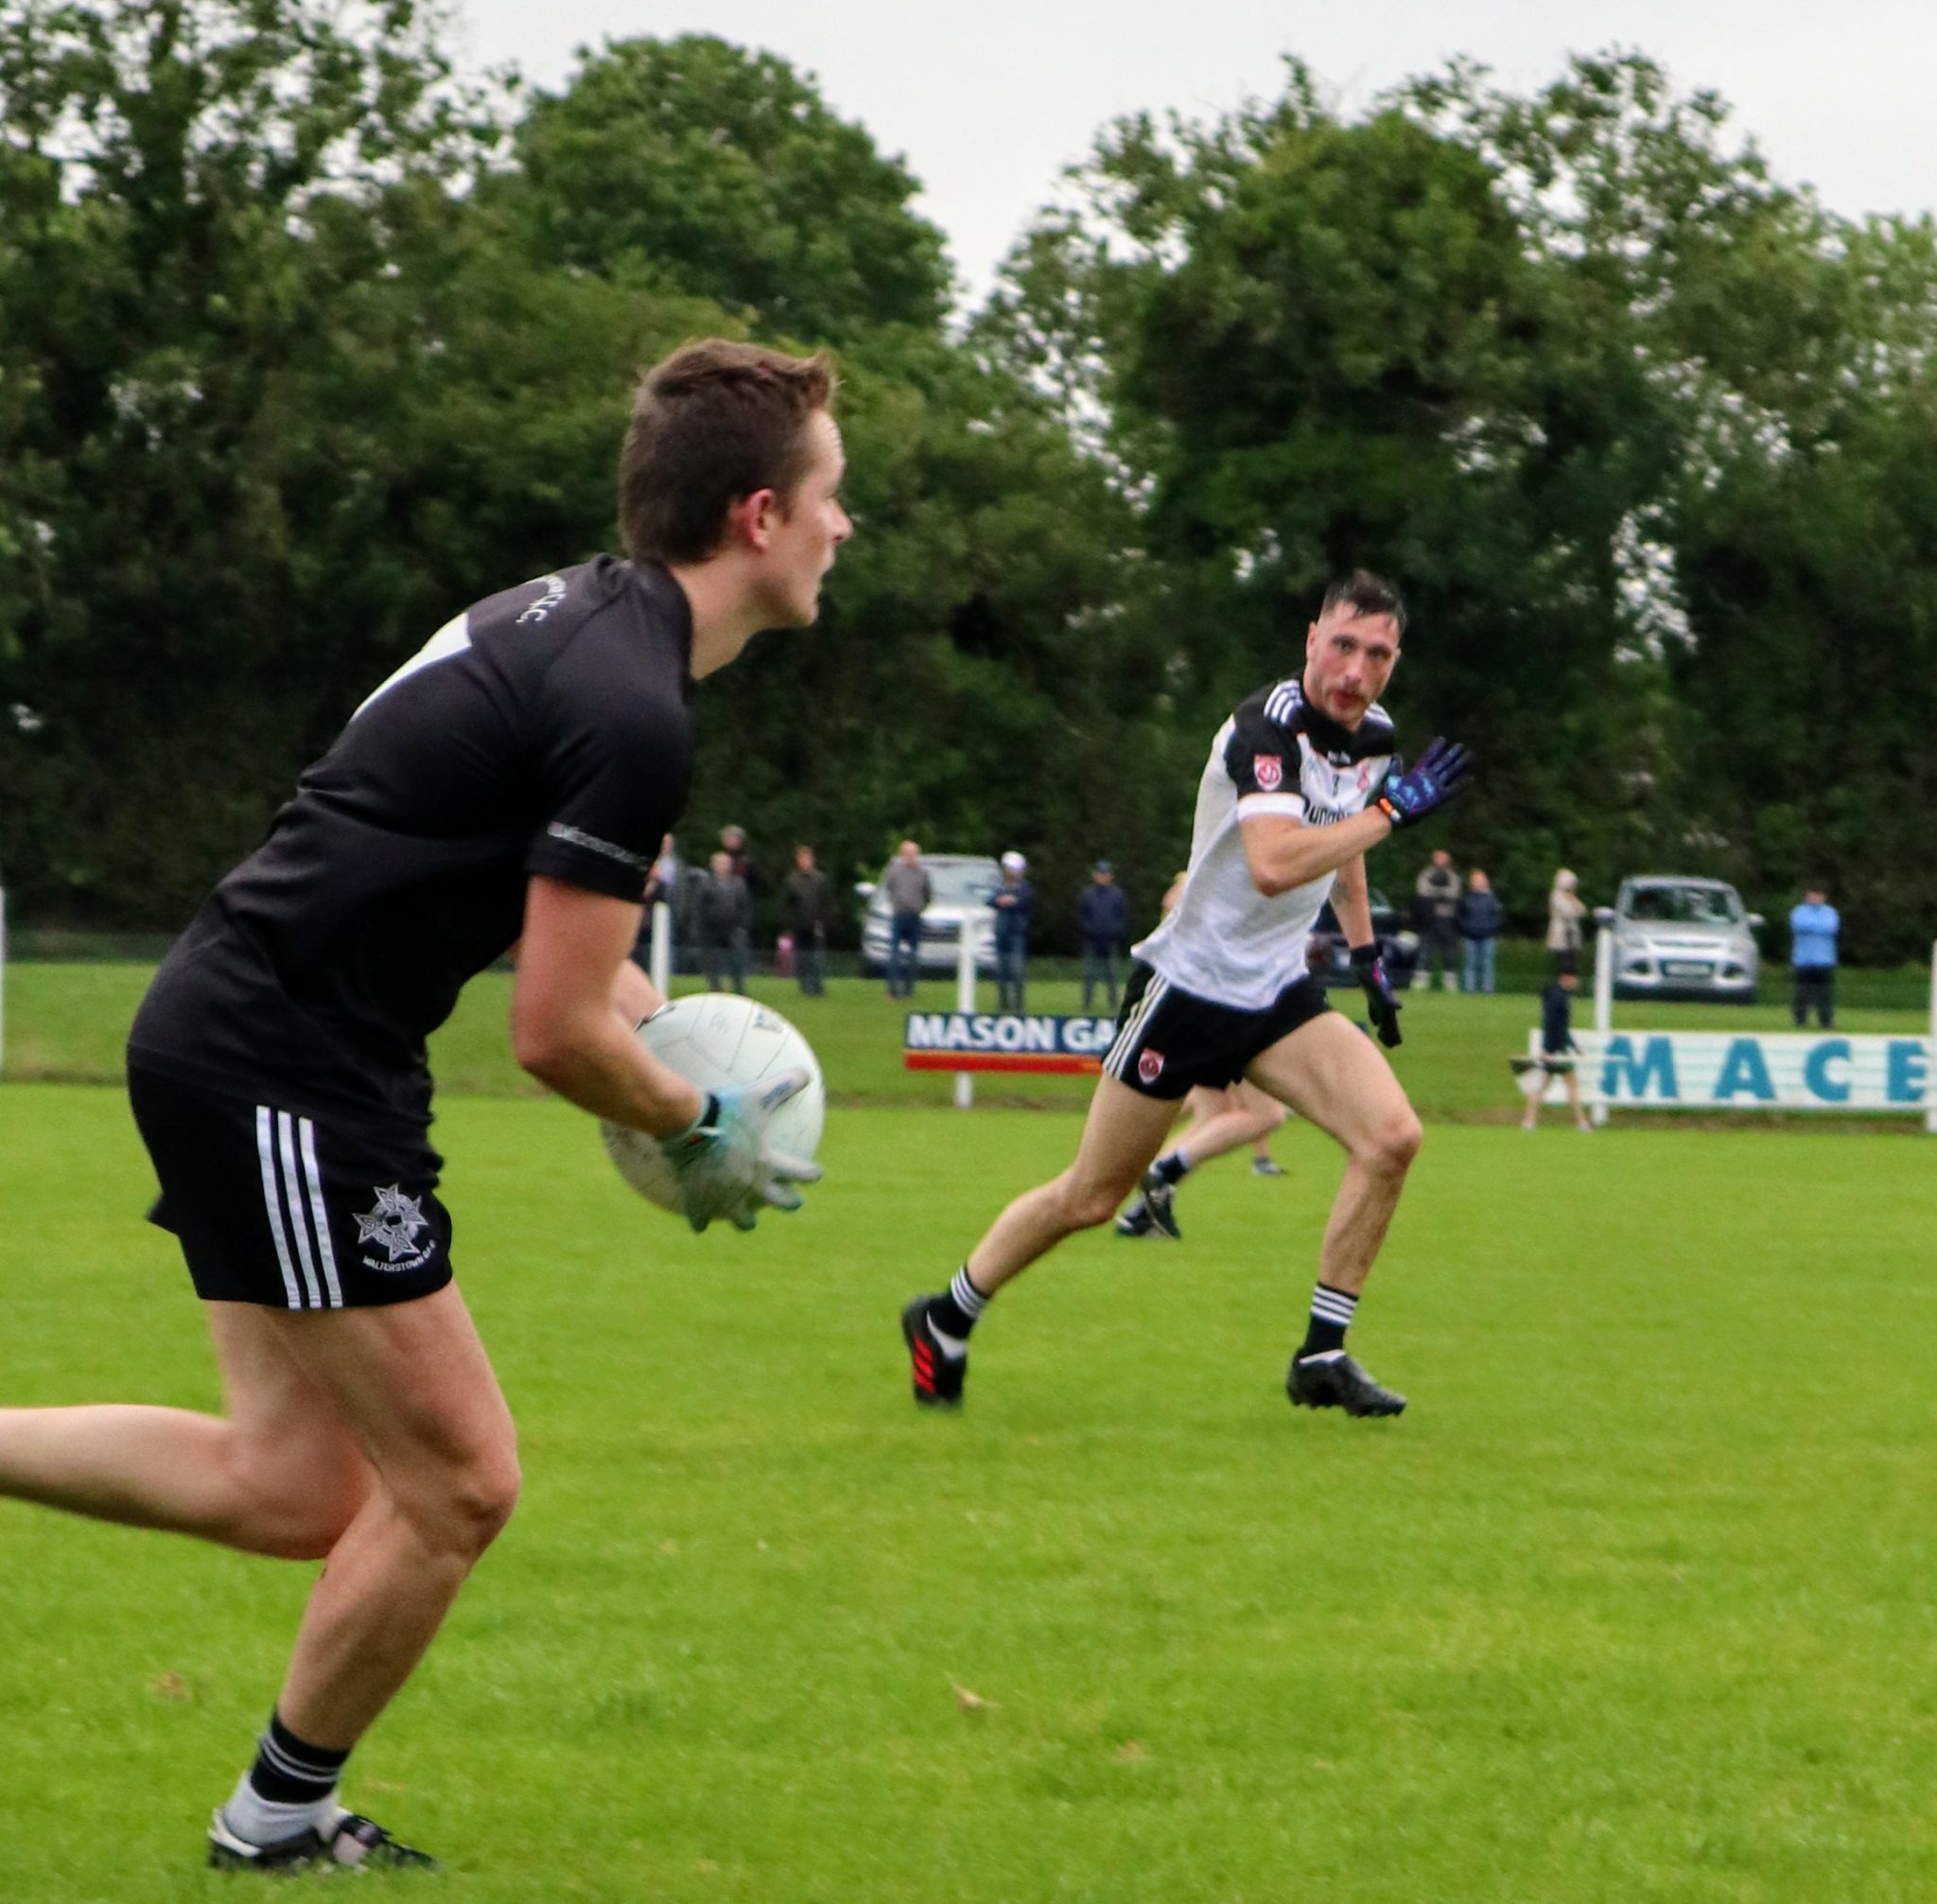 Walterstown return with a win over Dunderry in AFL Division 2B